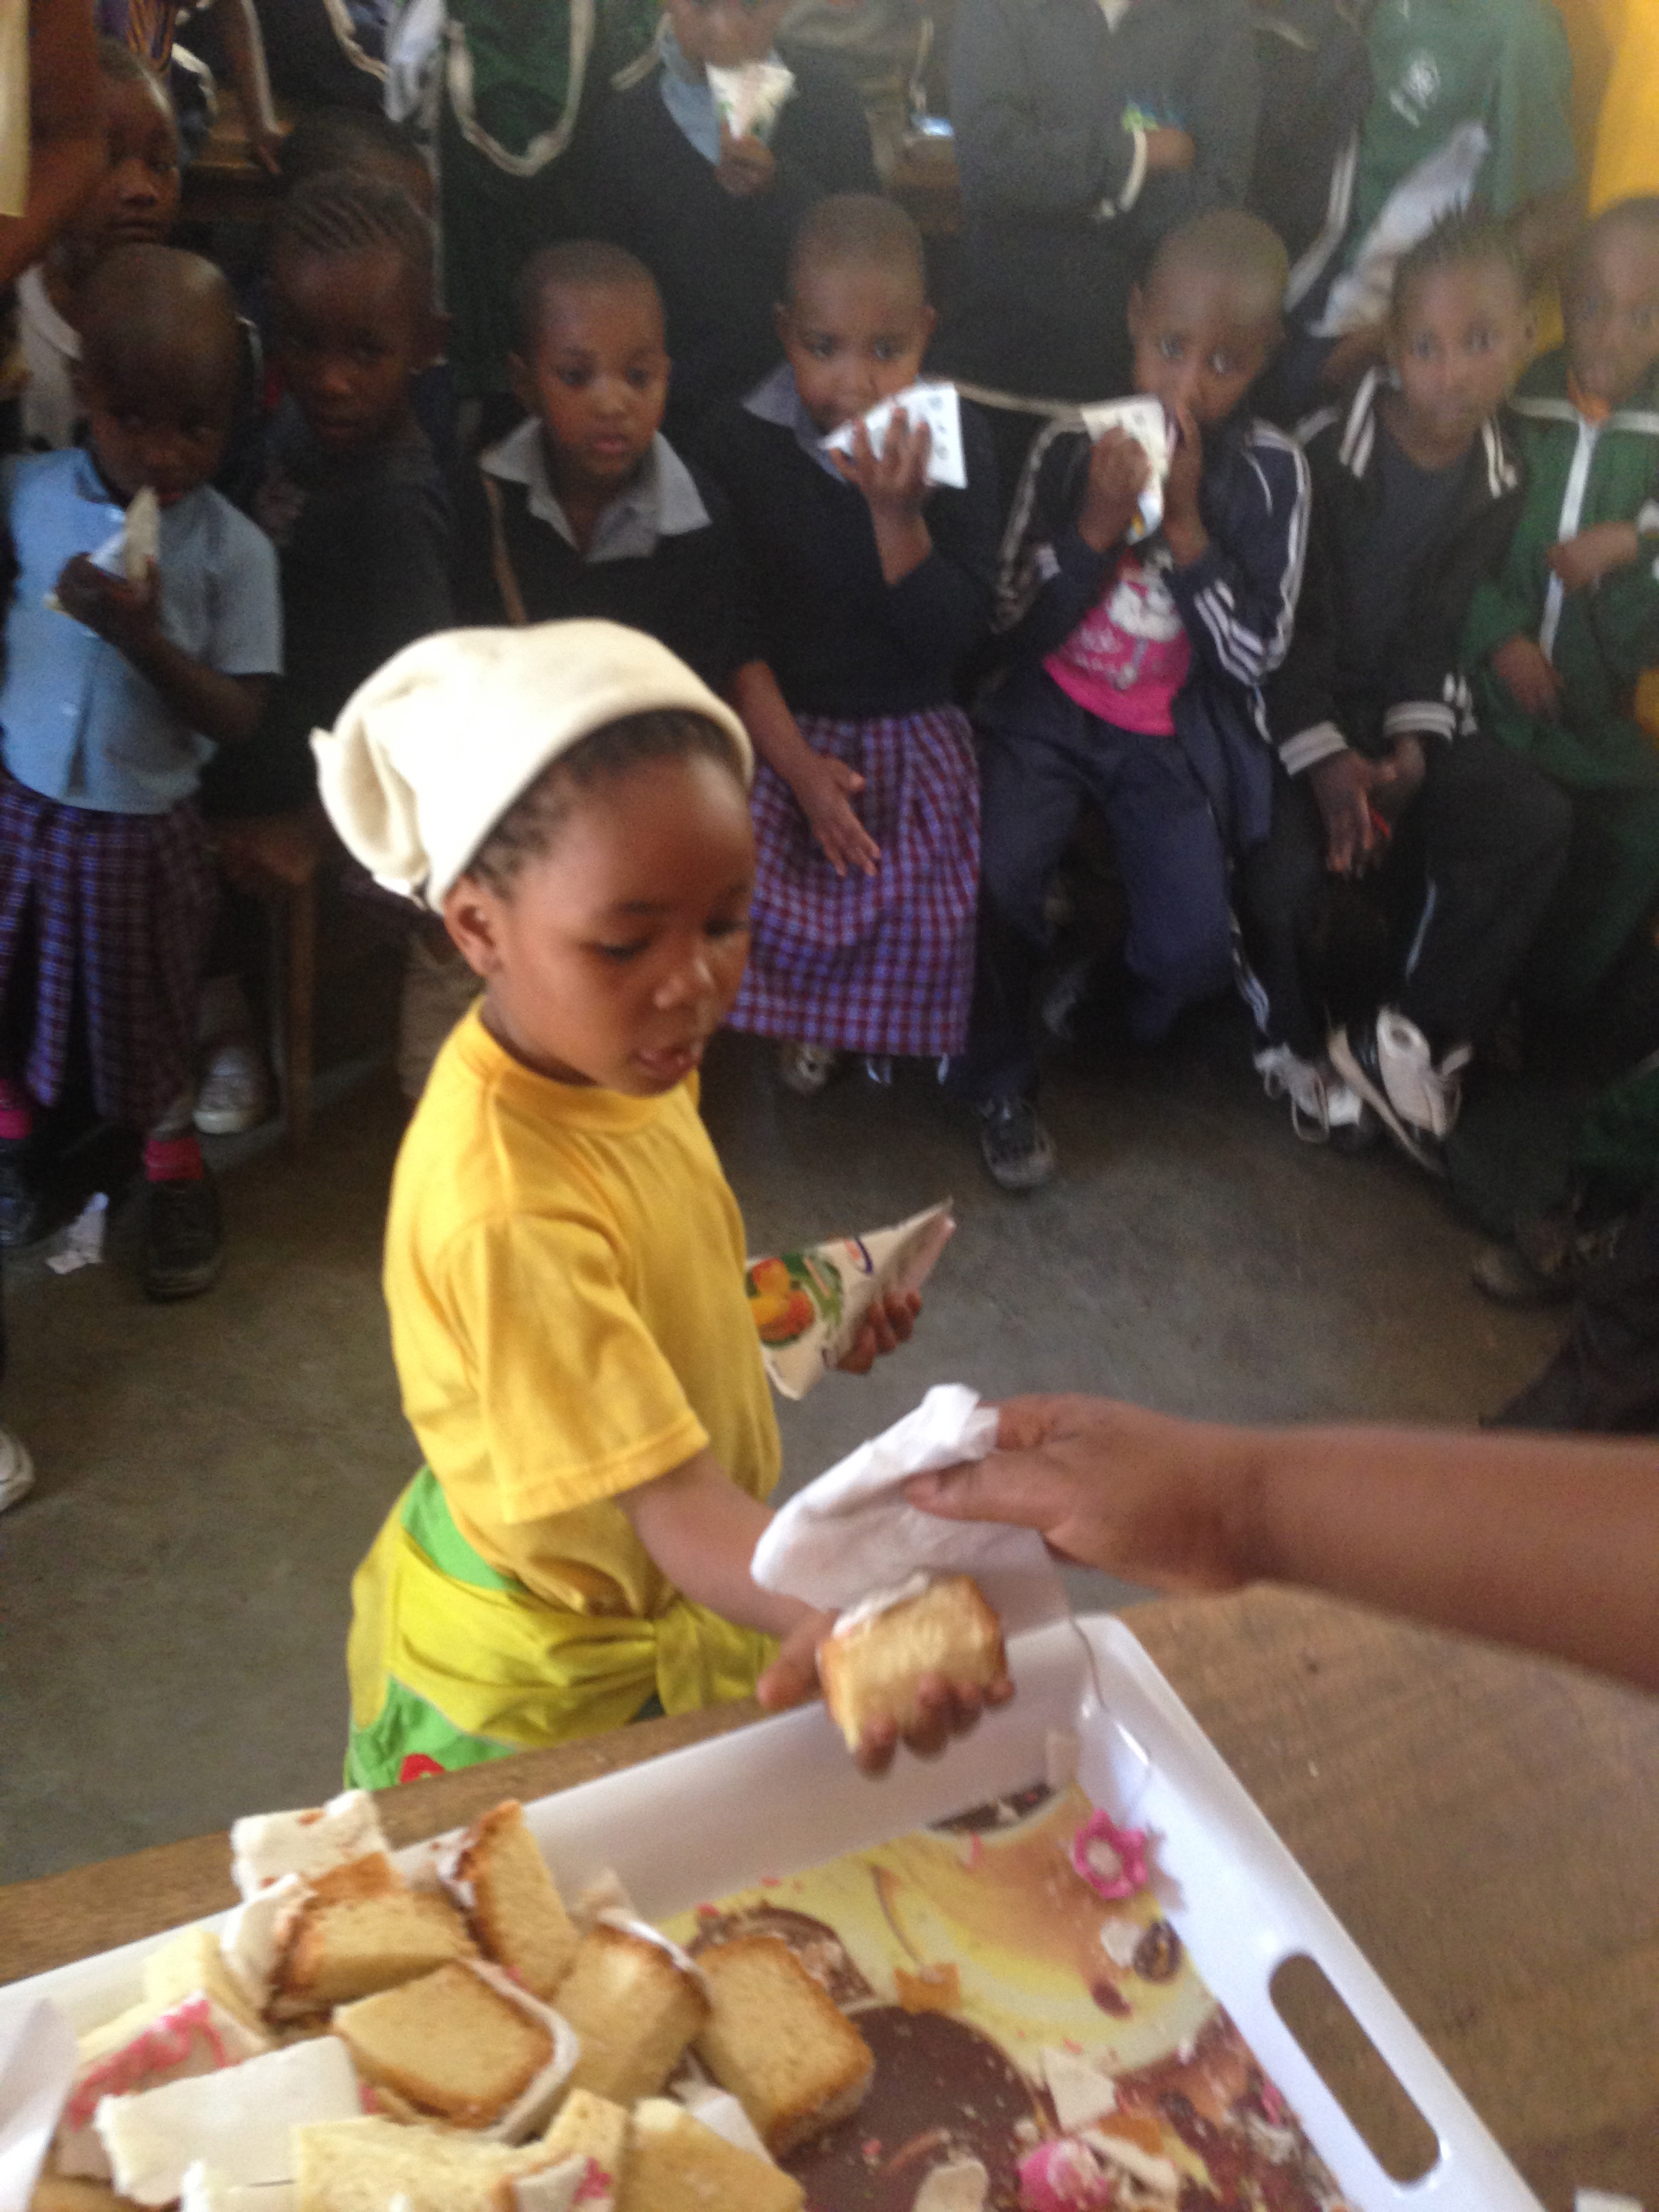 Here is Alice handing out tasty pieces of cake to each of the kids!